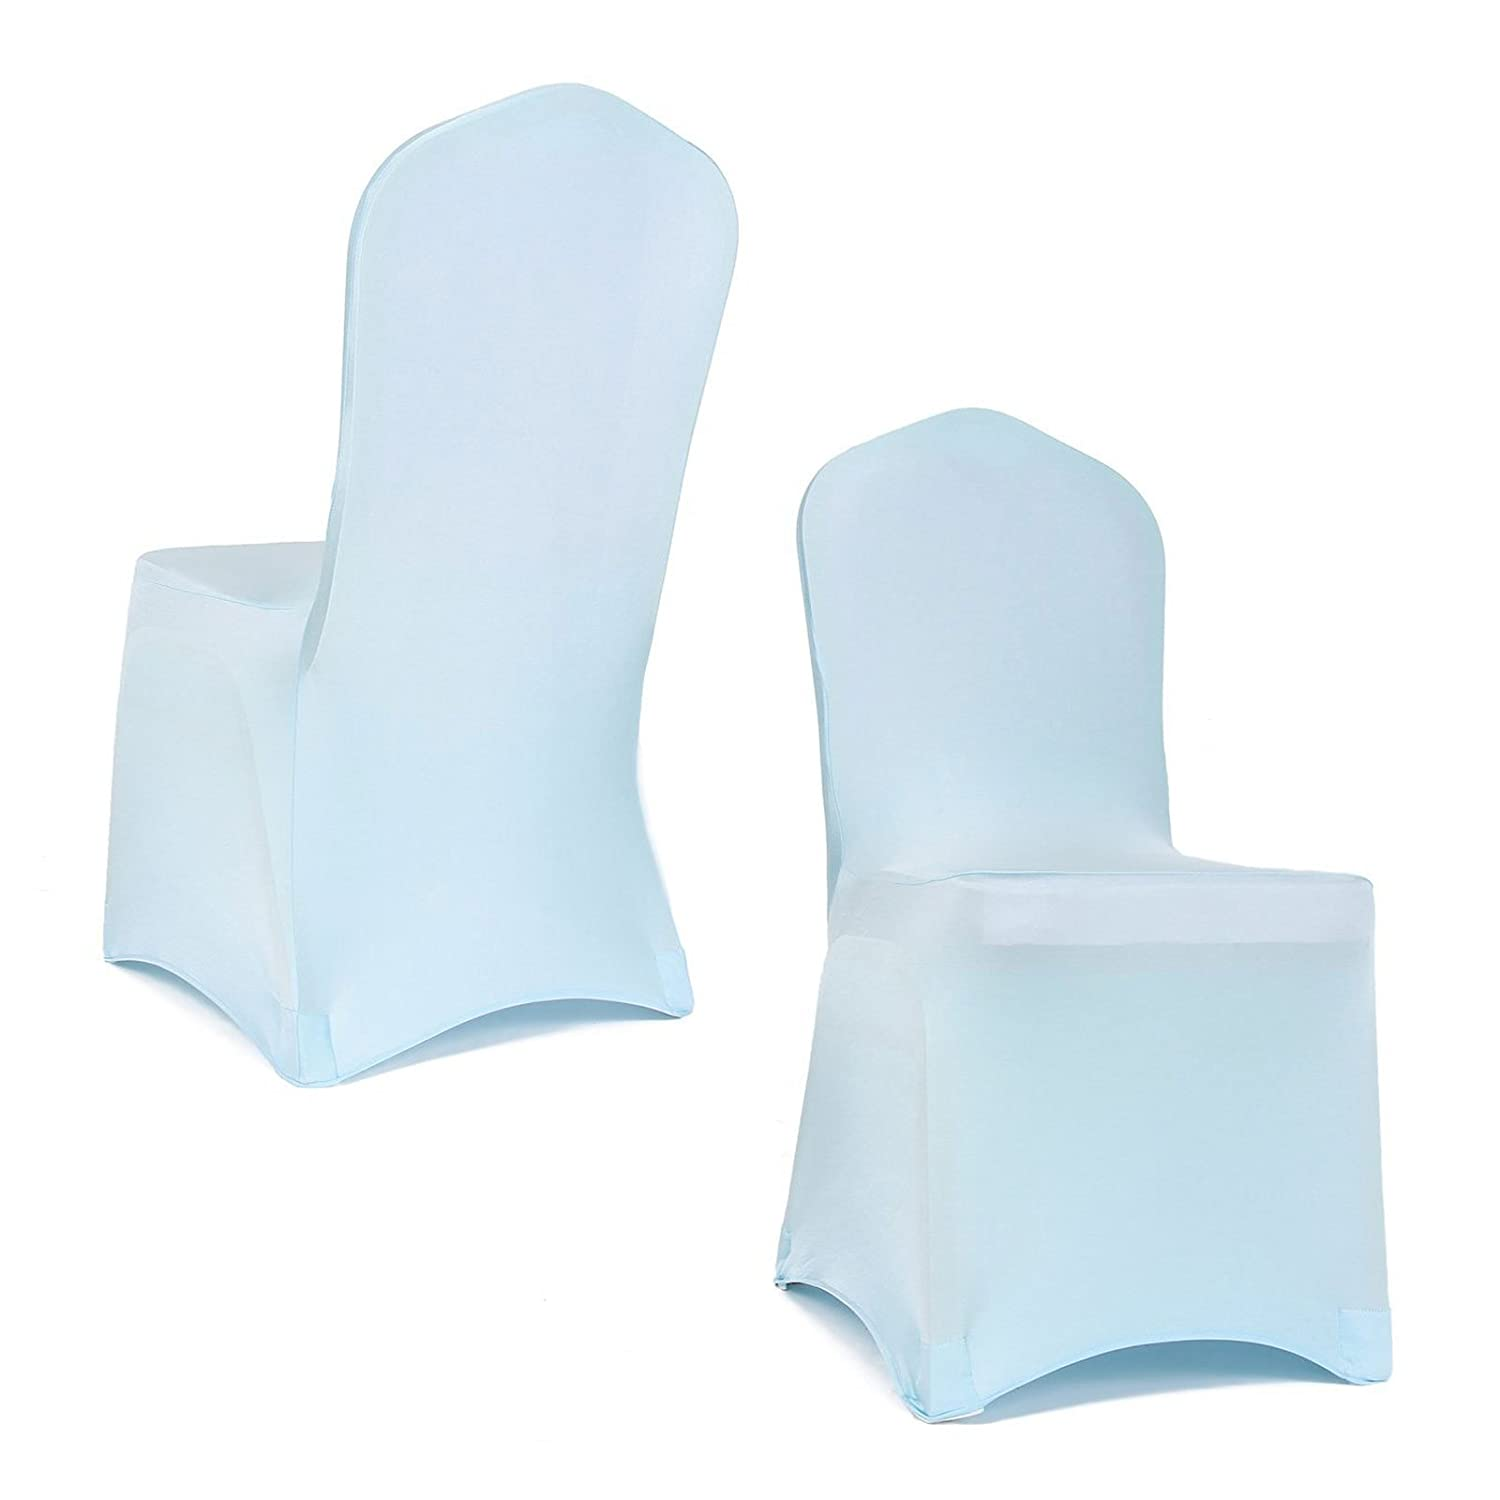 Single Baby Blue Chair Cover Spandex Lycra Wedding Banquet Birthday Party Events Dining Elasticated Arched Front by Trimming Shop